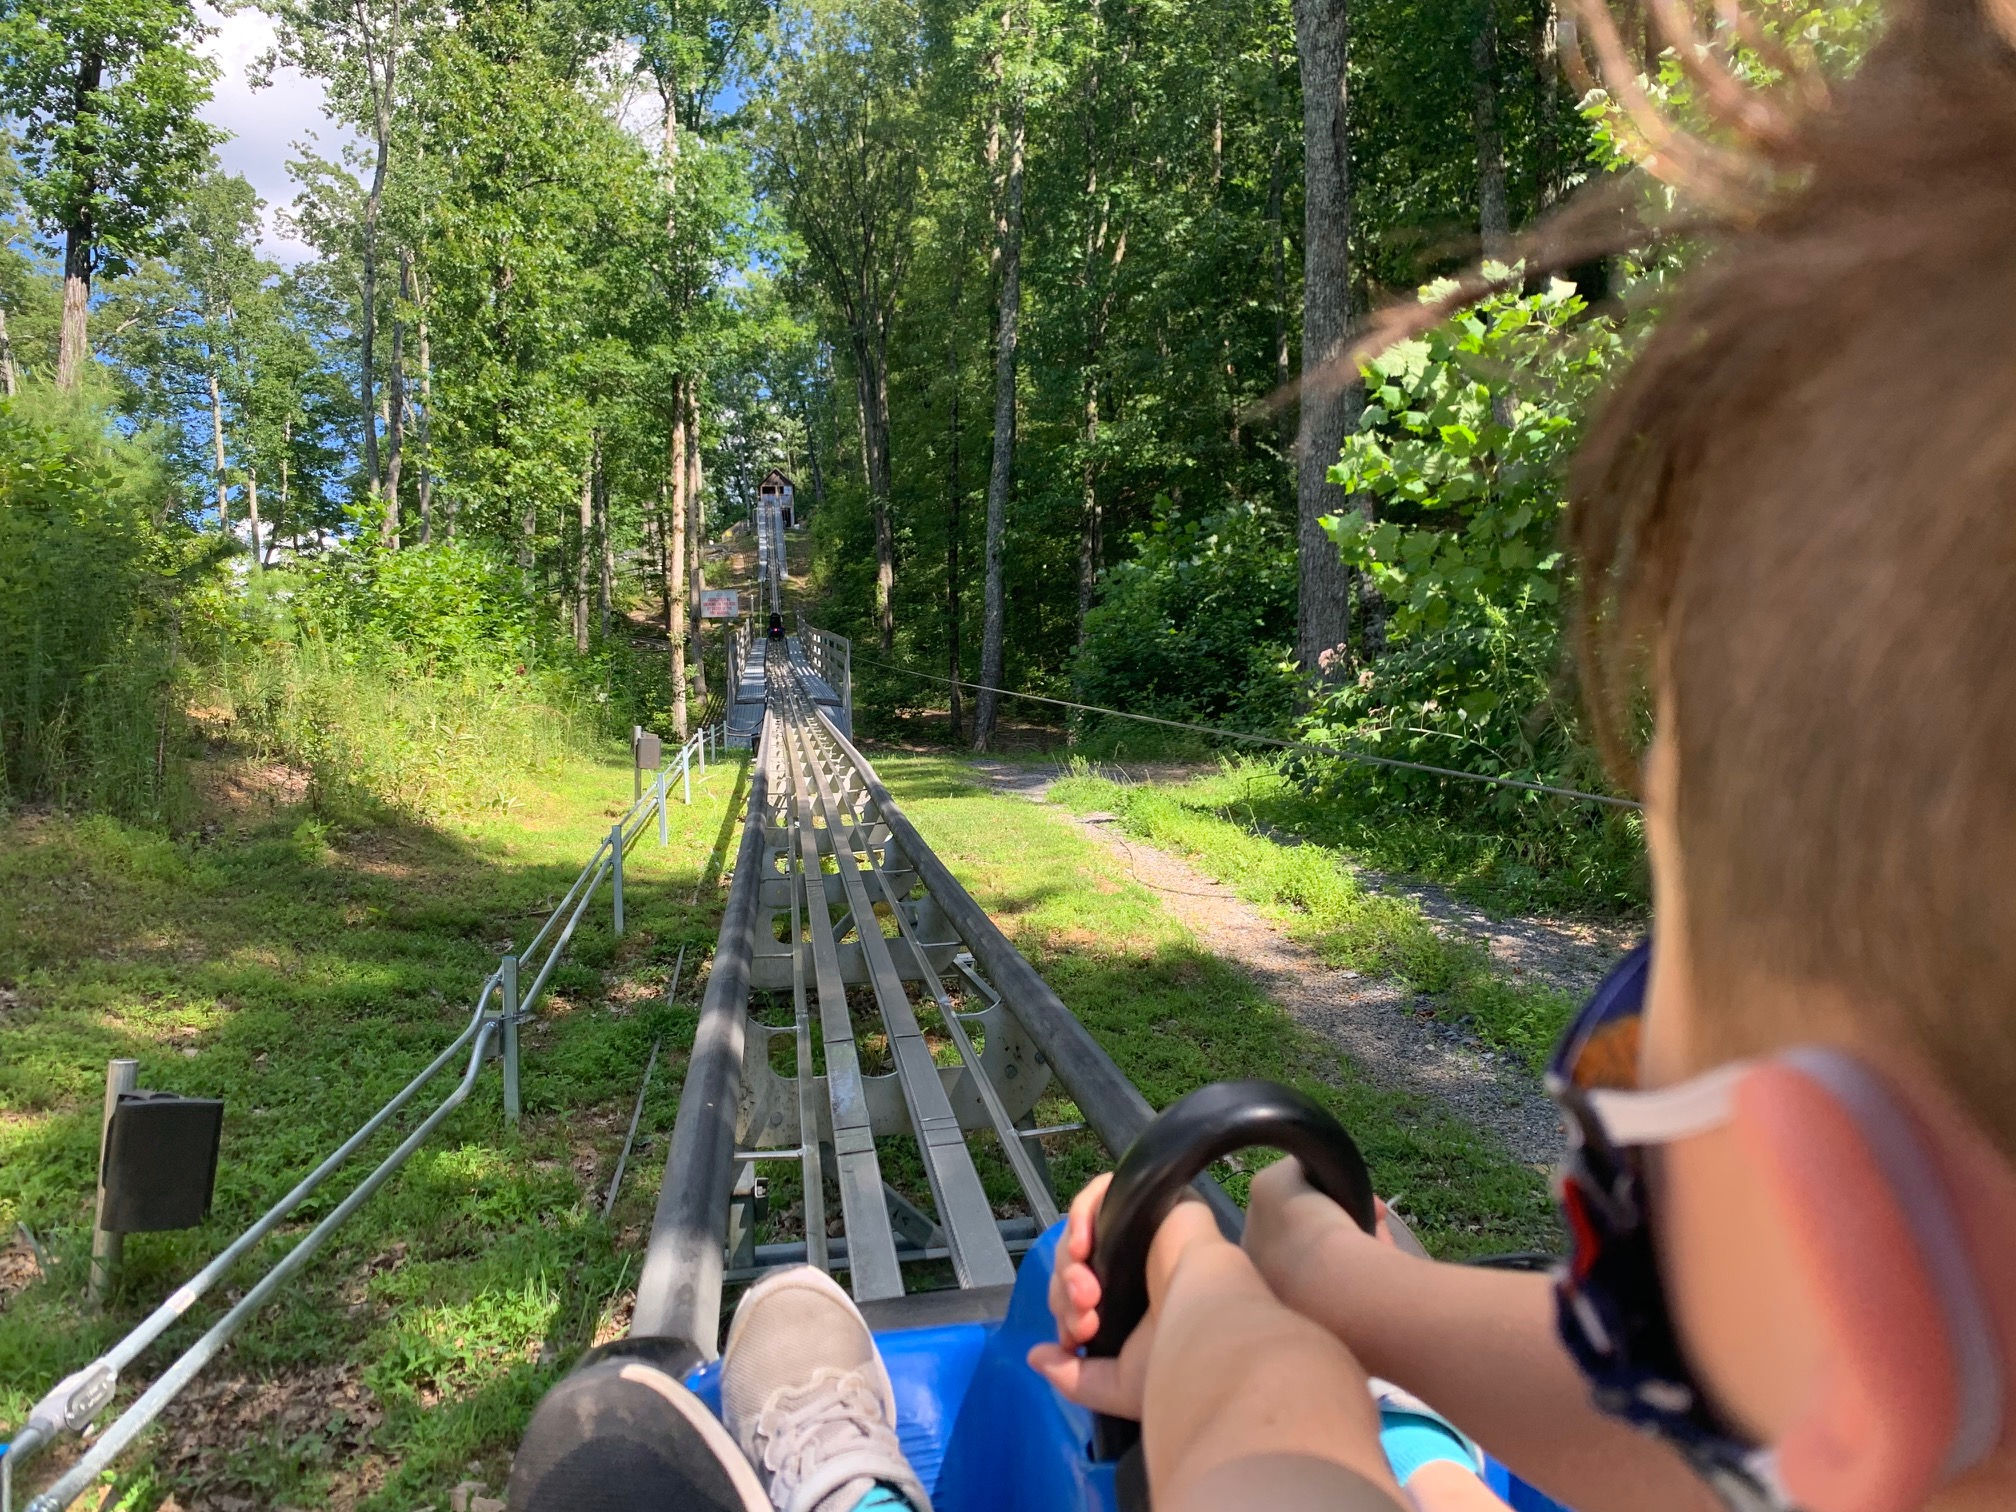 Coaster at Goats on the Roof mountain coaster Timothy